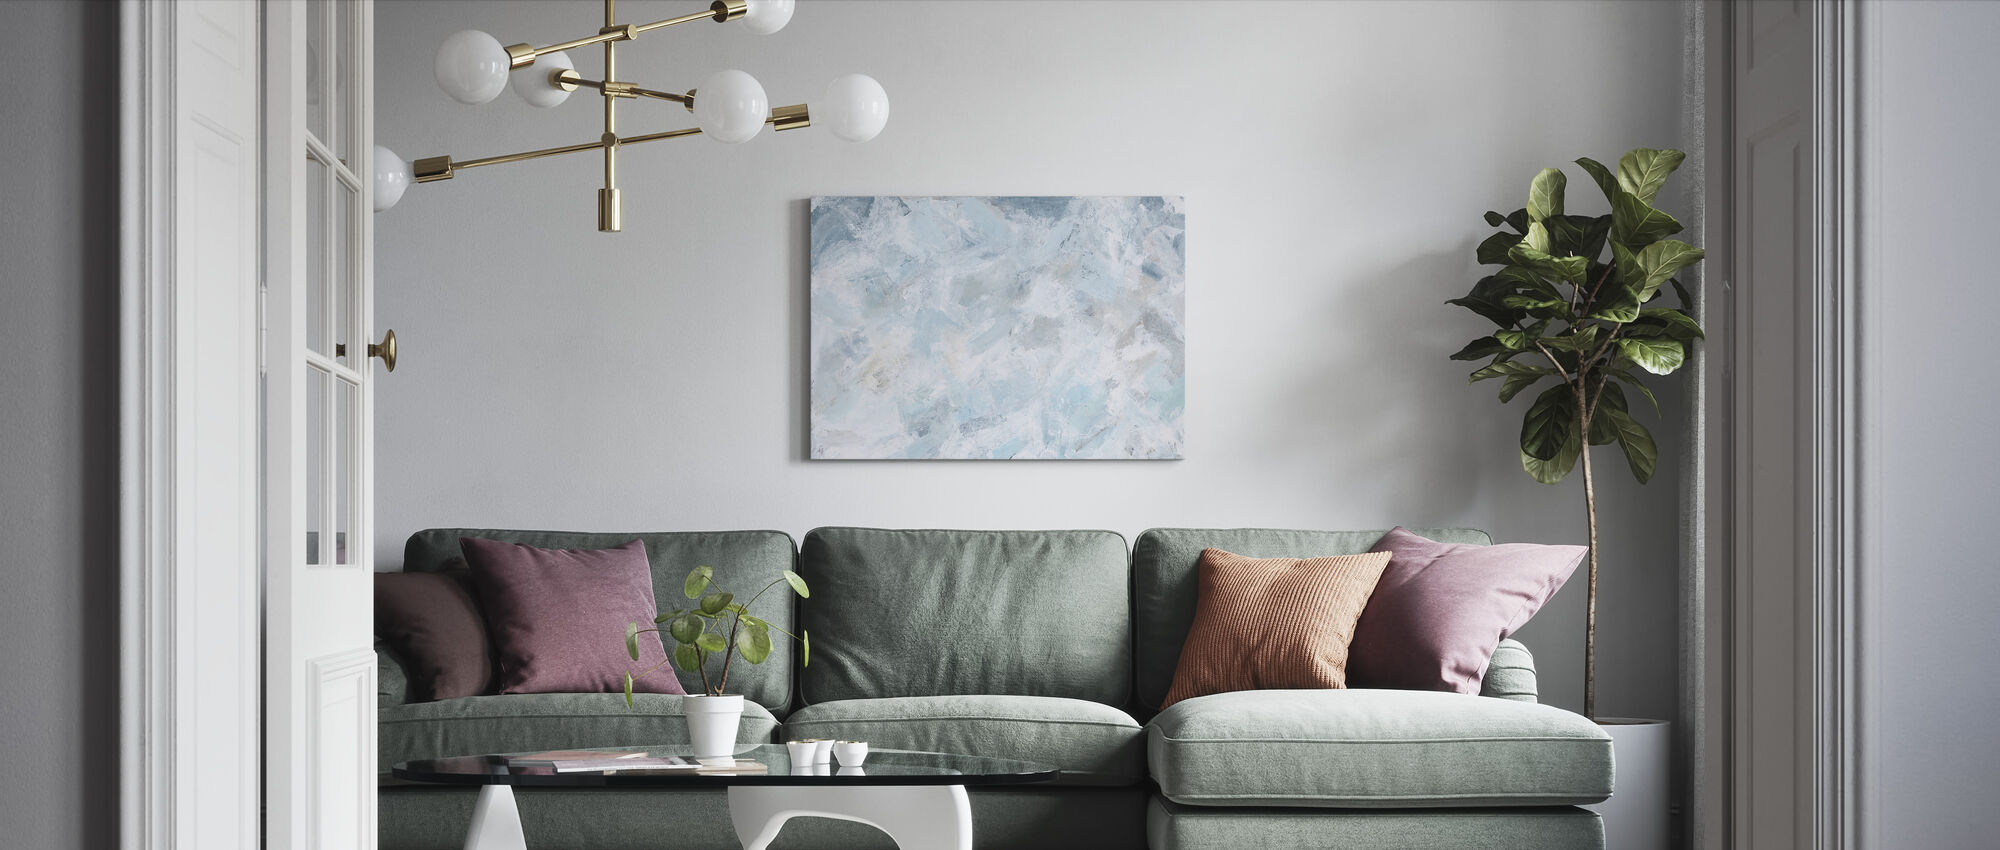 Serenity - Canvas print - Living Room